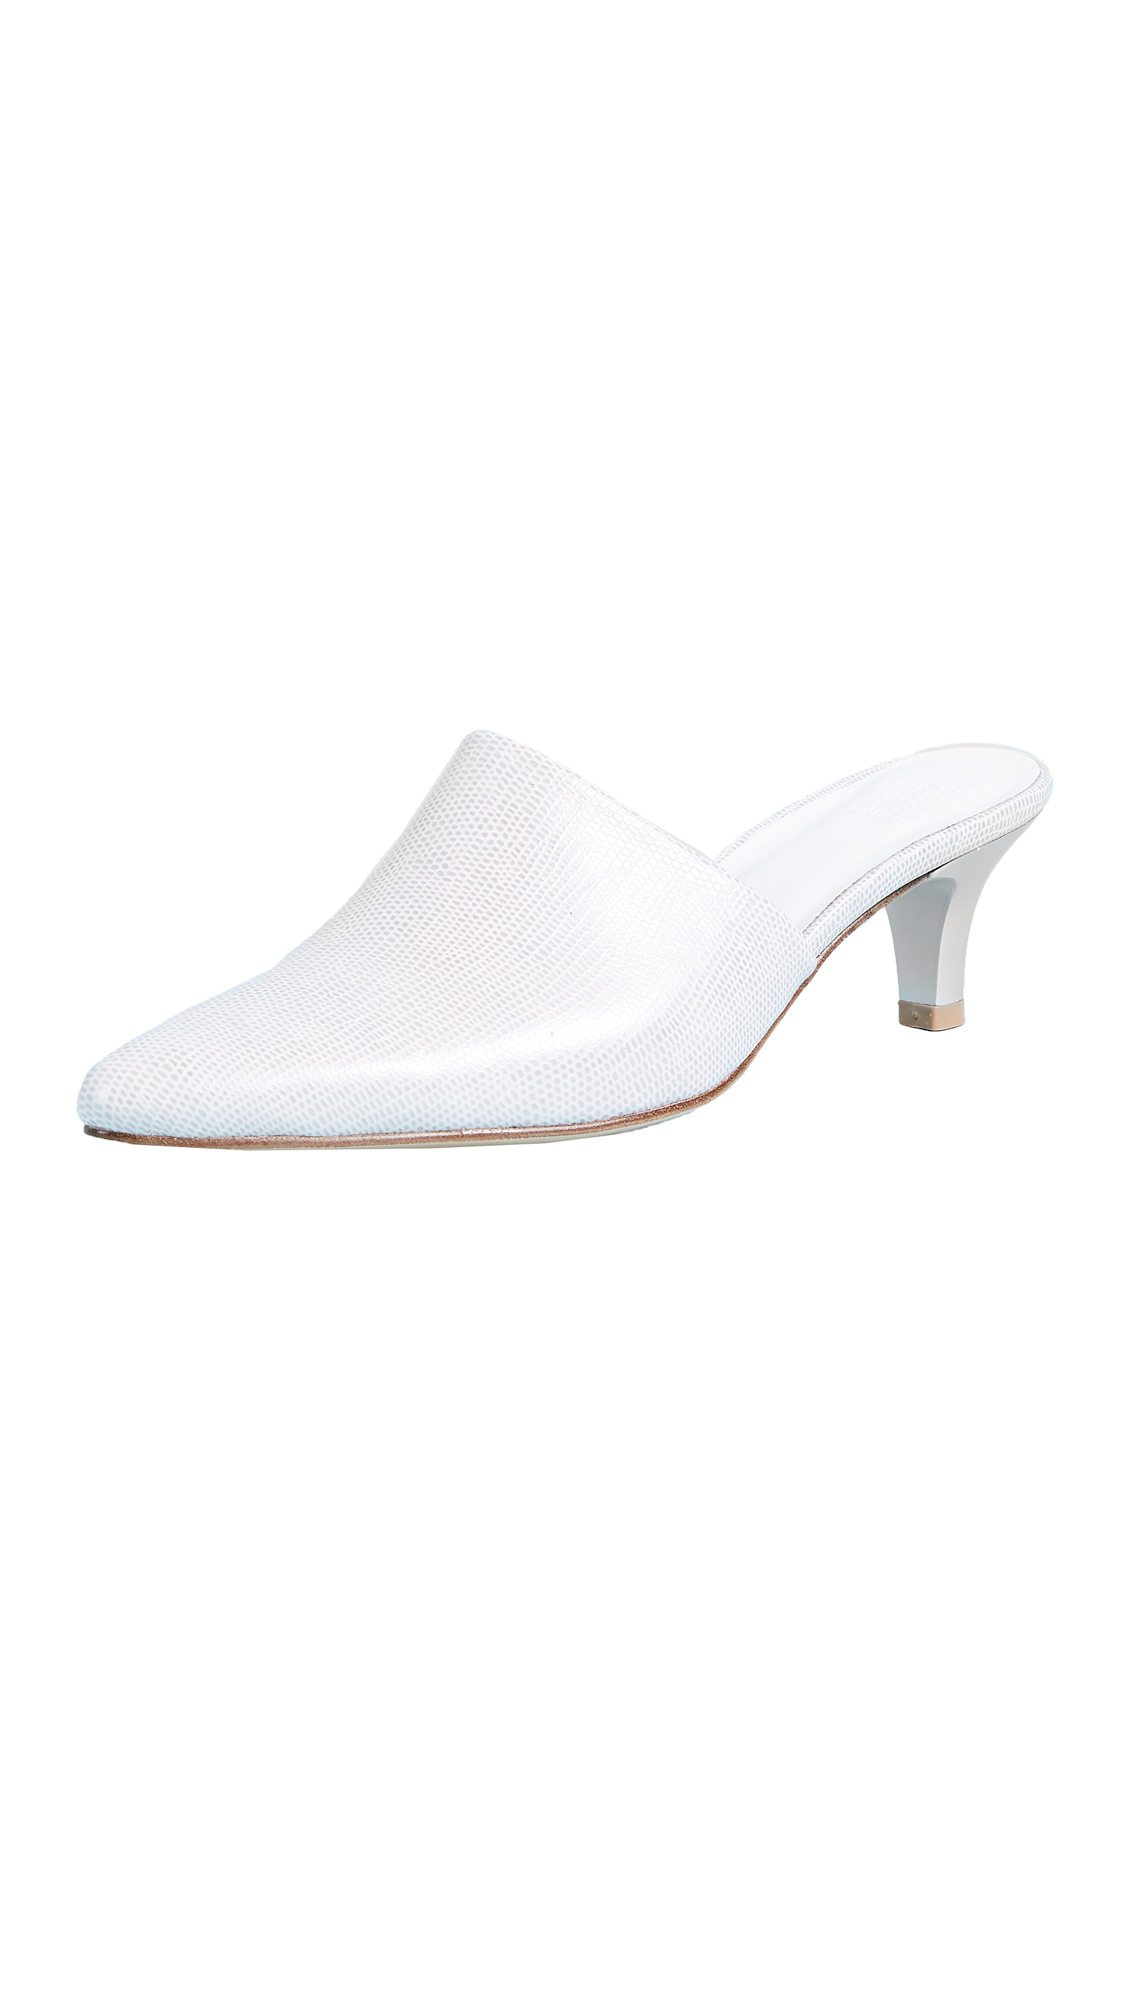 Maryam Nassir Zadeh Andrea Mule Pumps - White